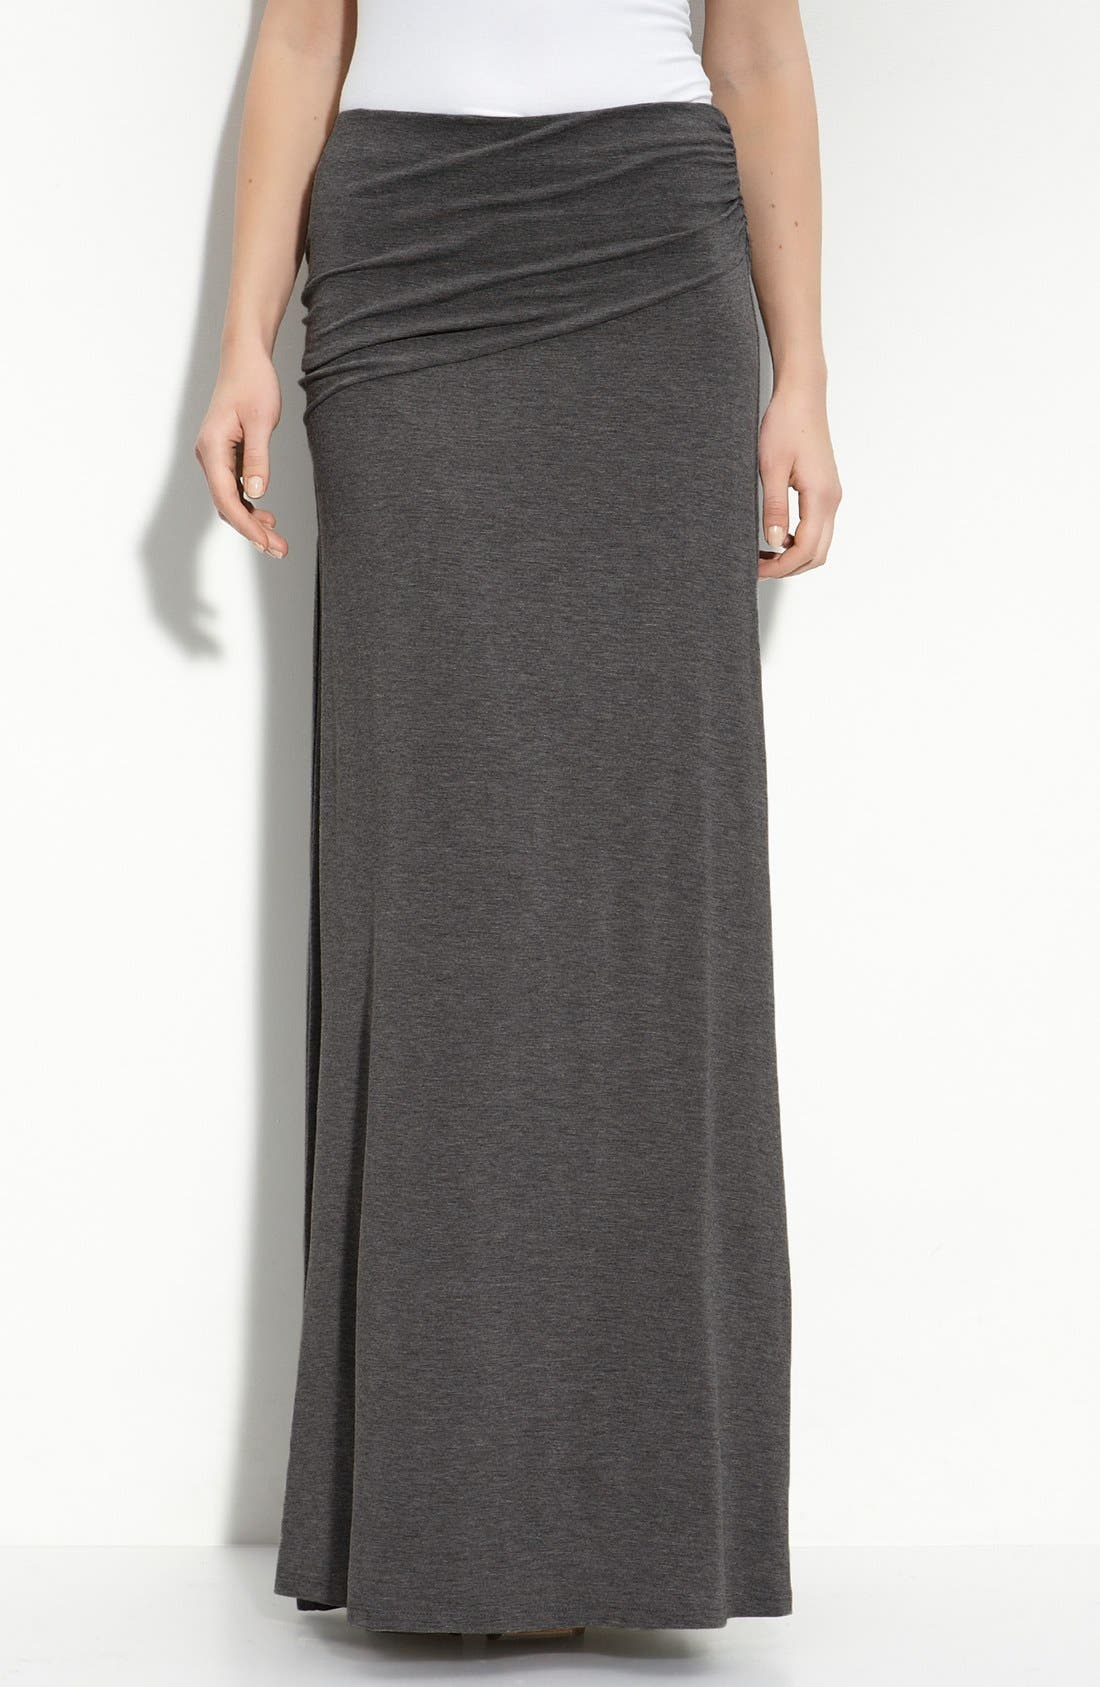 Alternate Image 1 Selected - Bobeau Asymmetric Knit Maxi Skirt (Regular & Petite)